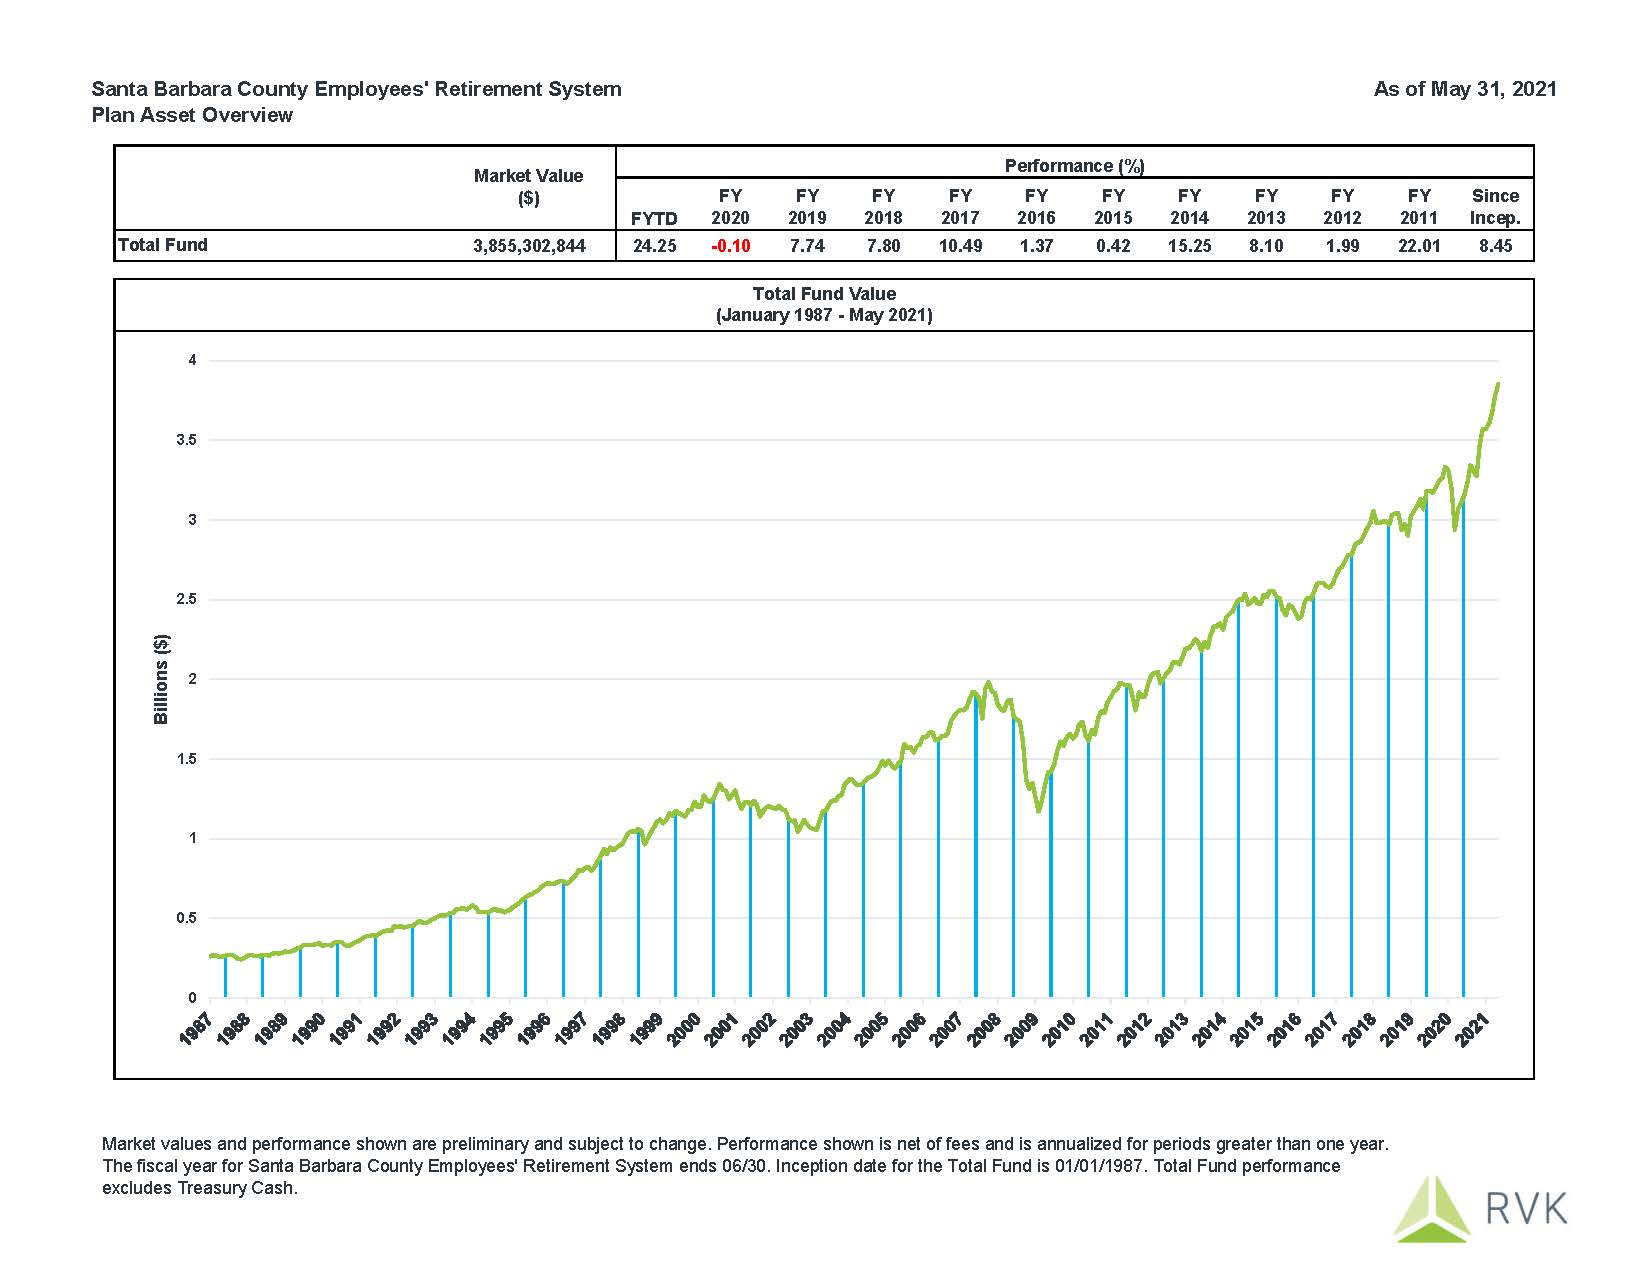 May 2021 Fund Performance: Fiscal Year to Date performance is 24.25%.